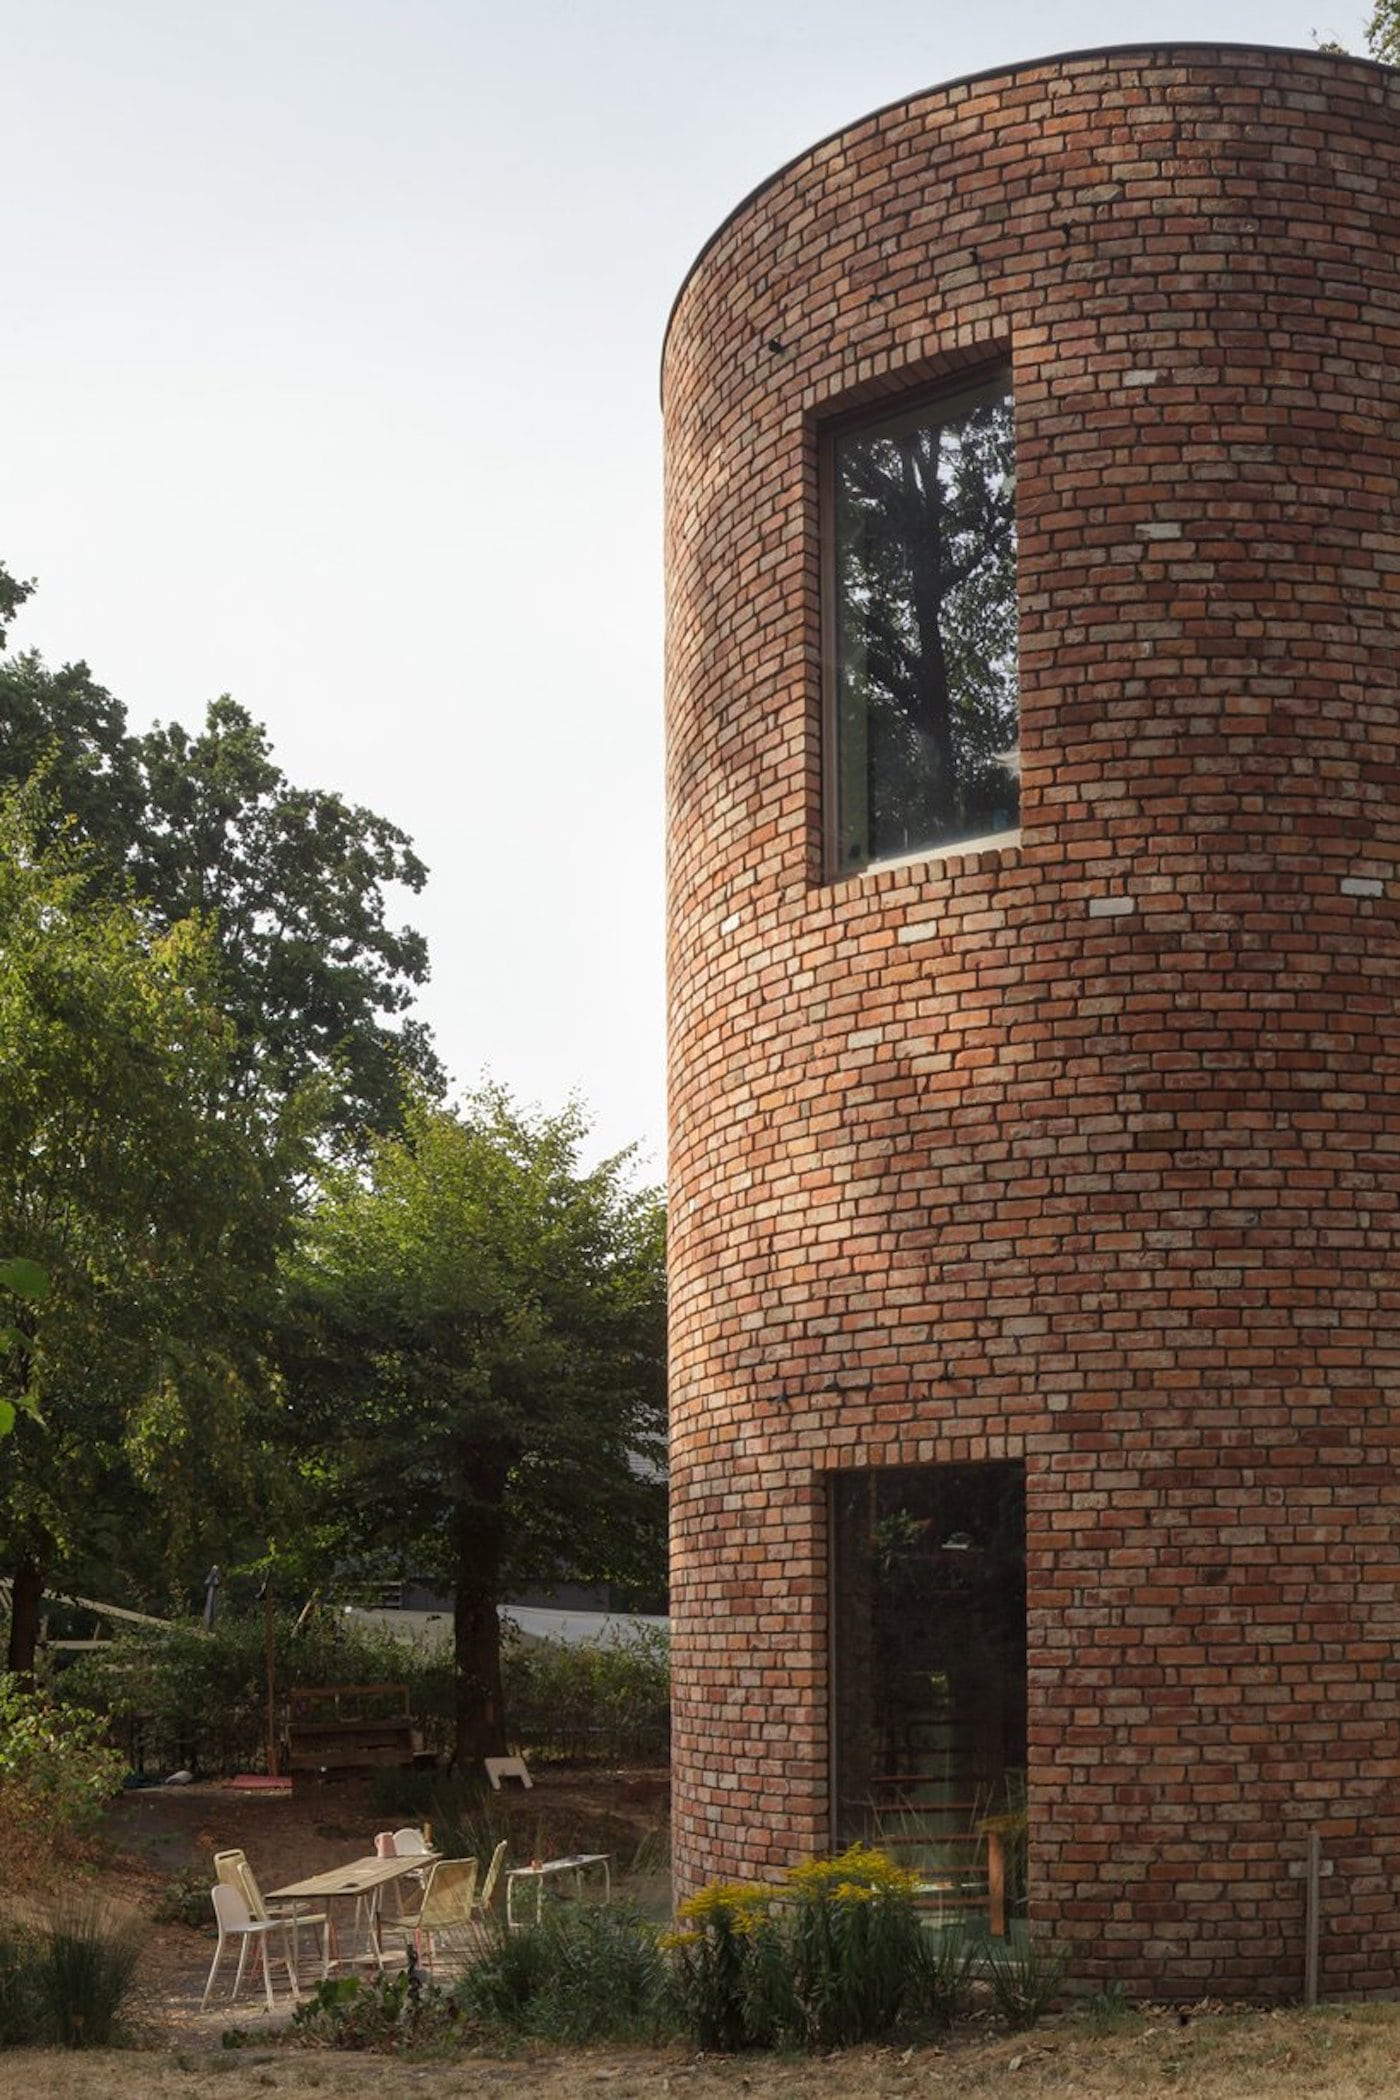 Courtyard next to recycled brick home